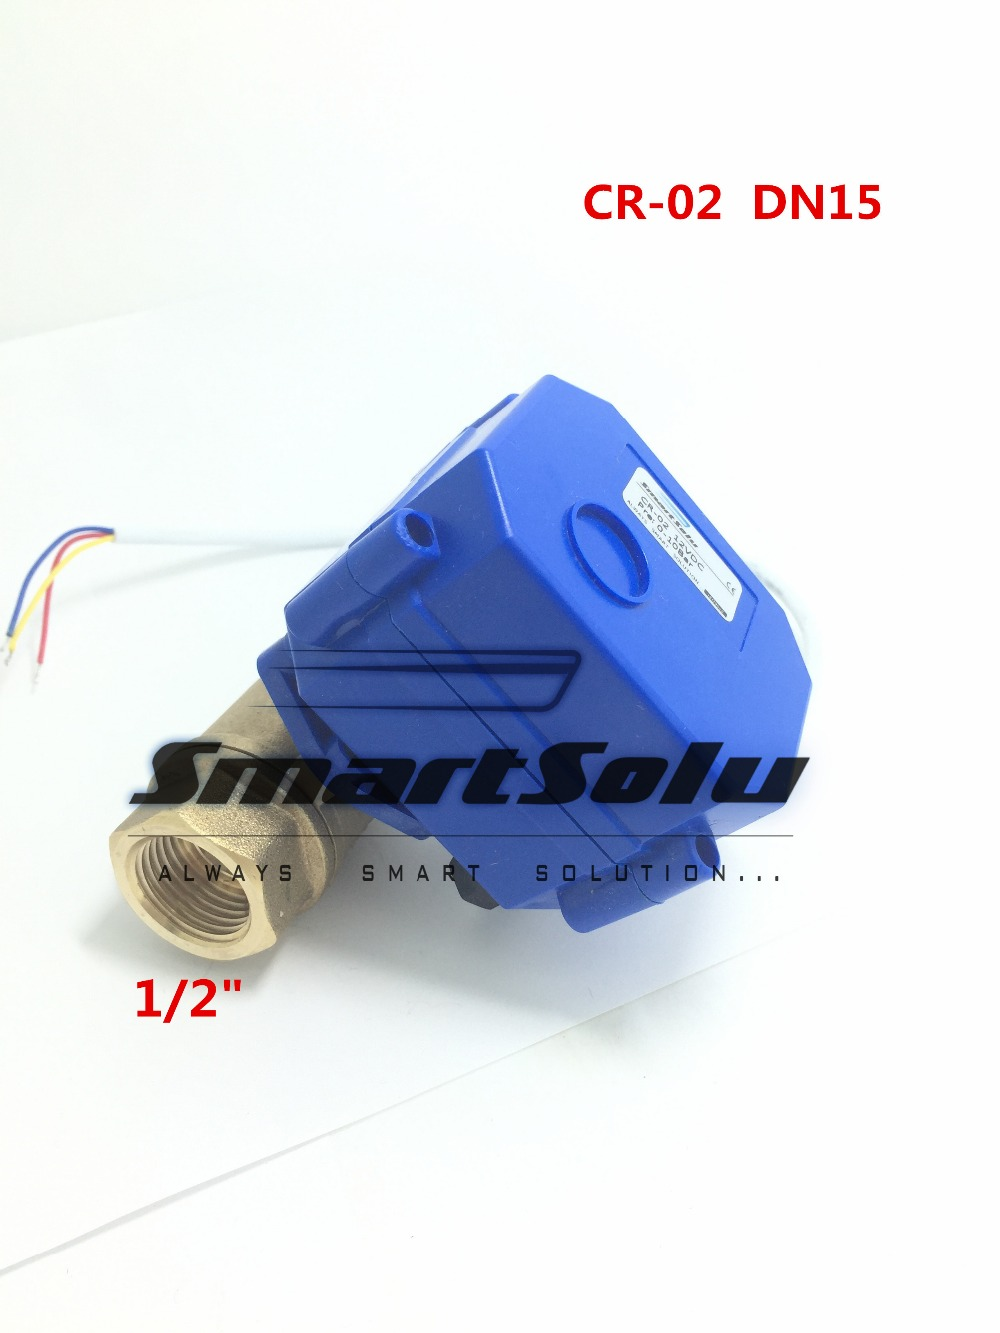 3 wire solenoid reviews online shopping 3 wire solenoid reviews shipping 1 2 dn15 dc12v brass two way motorized ball valve cr 02 3 wires electrical ball valve